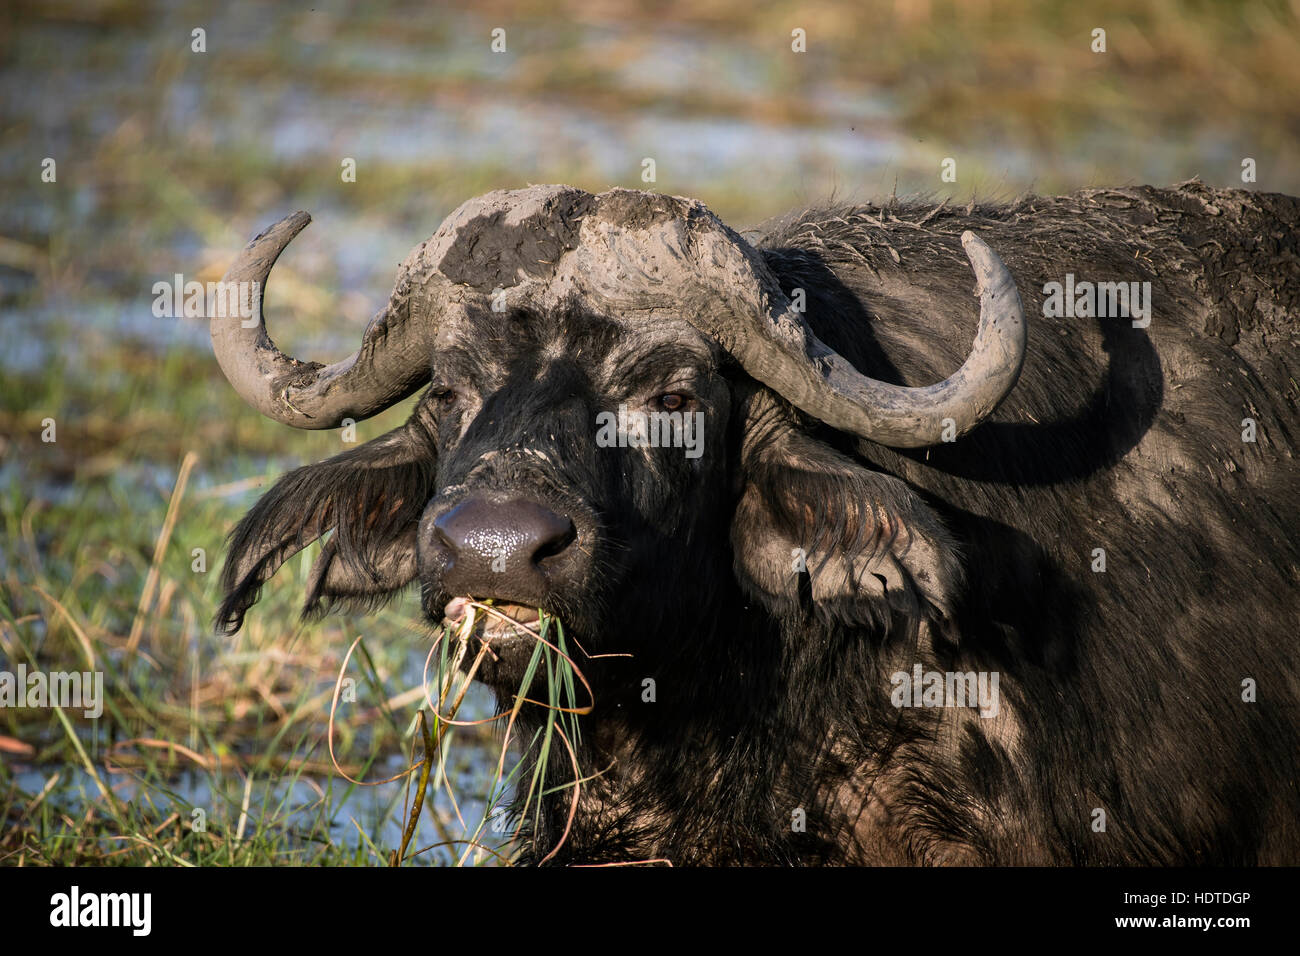 African or Cape buffalo (Syncerus caffer) feeding, Chobe River, Chobe National Park, Botswana Stock Photo